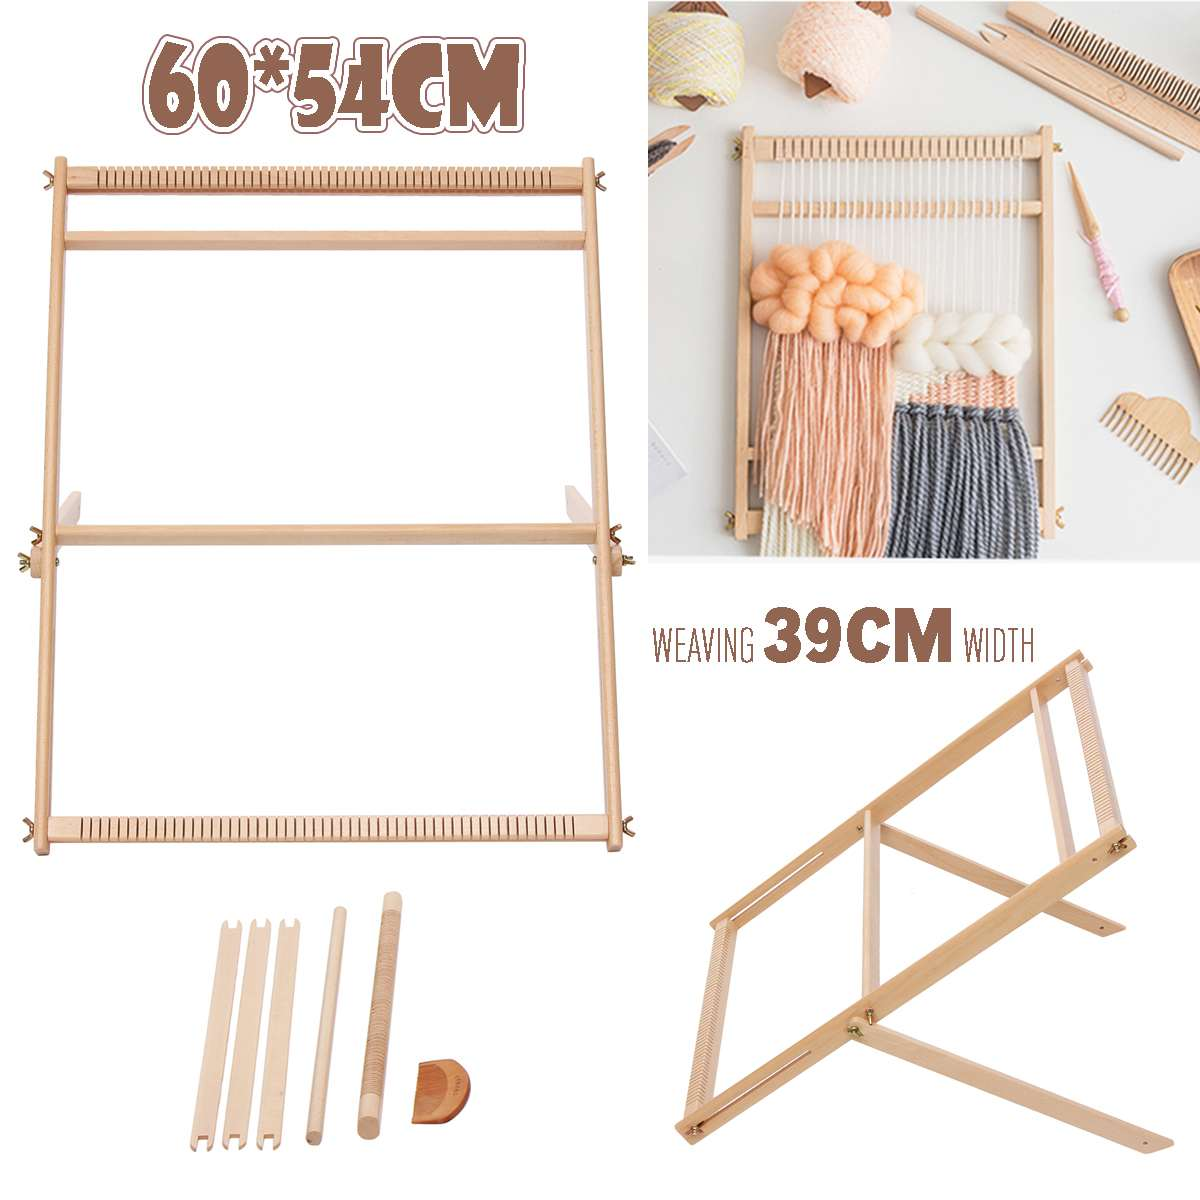 Wooden Weaving Loom Kit Hand-Woven DIY Woven Set Household Tapestry Scarf Multifunctional Loom Sewing Machine